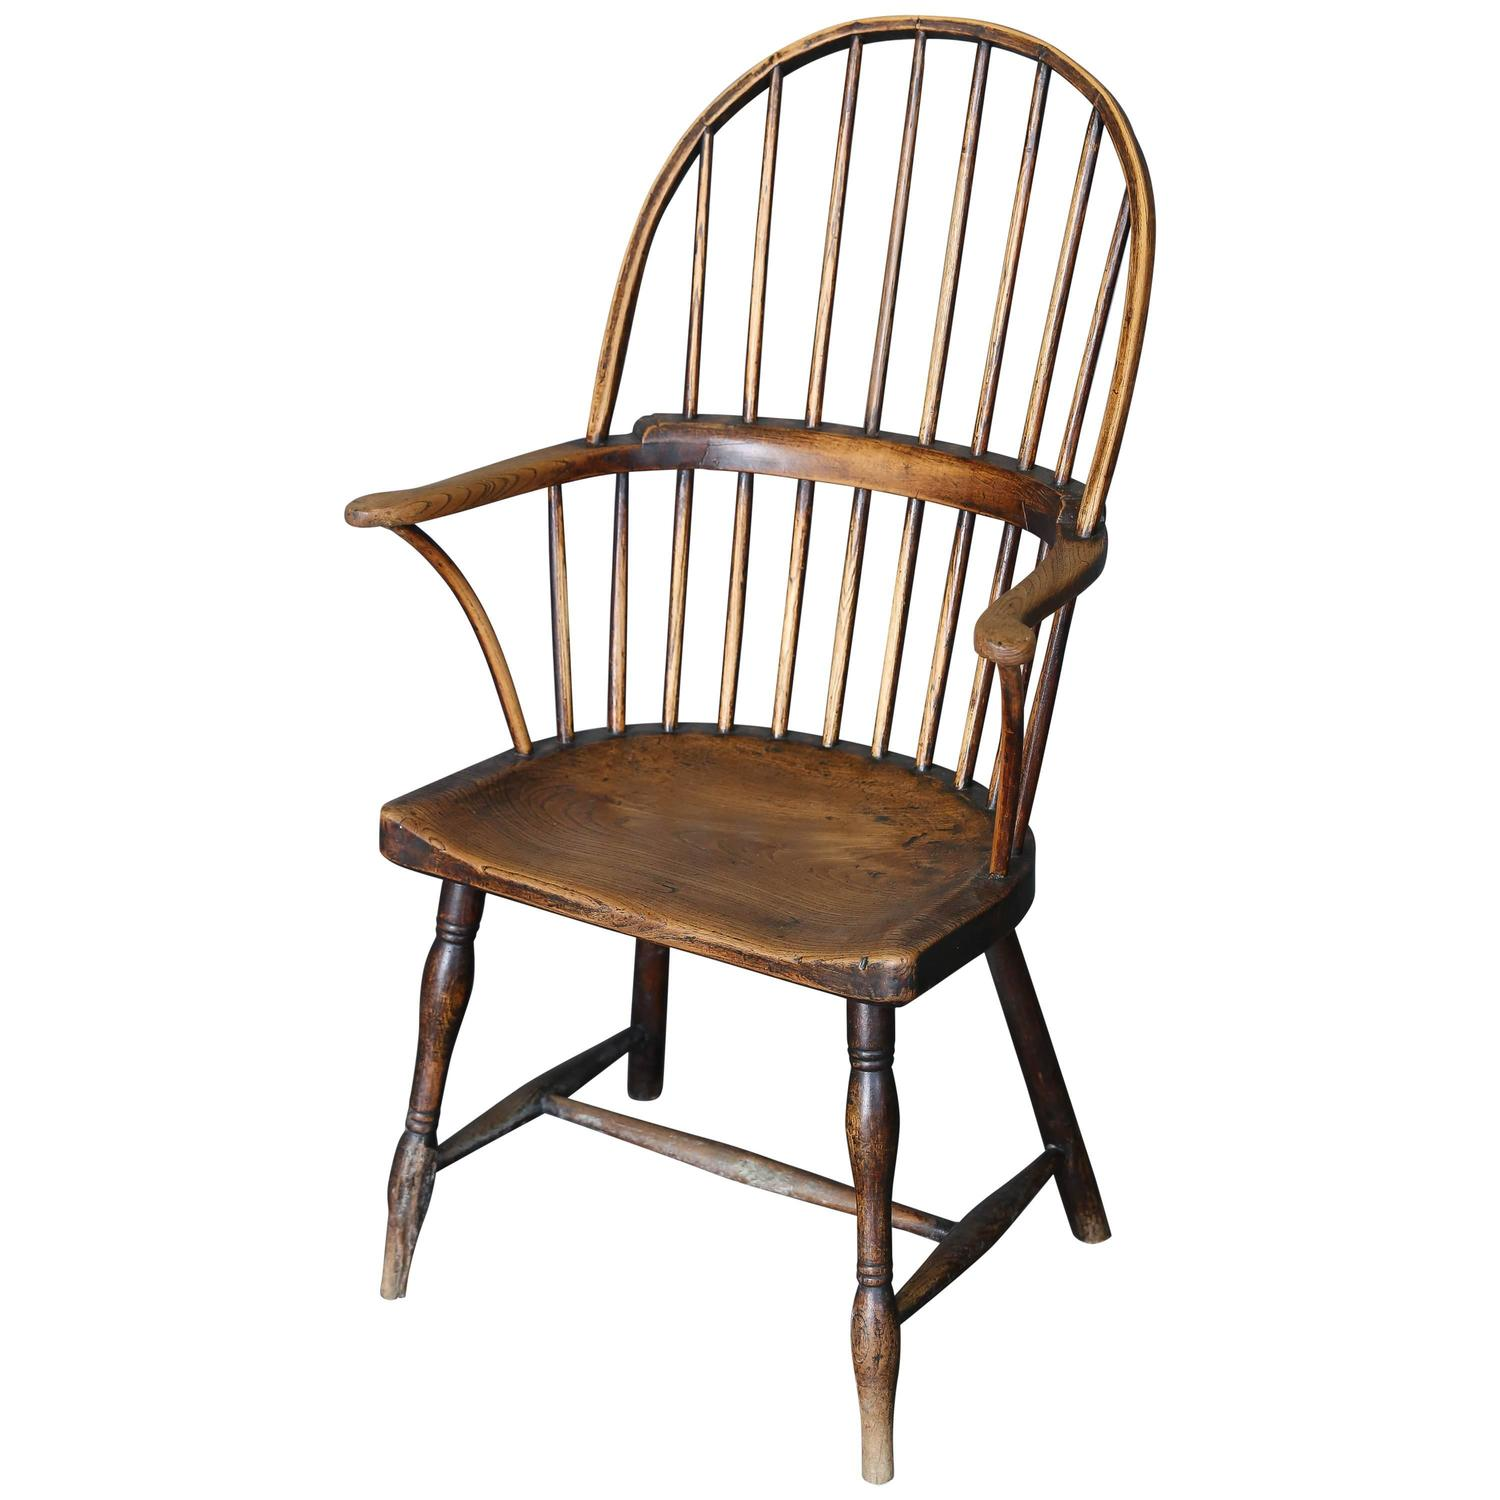 Antique 18th Century Ash and Elm Windsor Chair - 18th Century And Earlier Windsor Chairs - 31 For Sale At 1stdibs